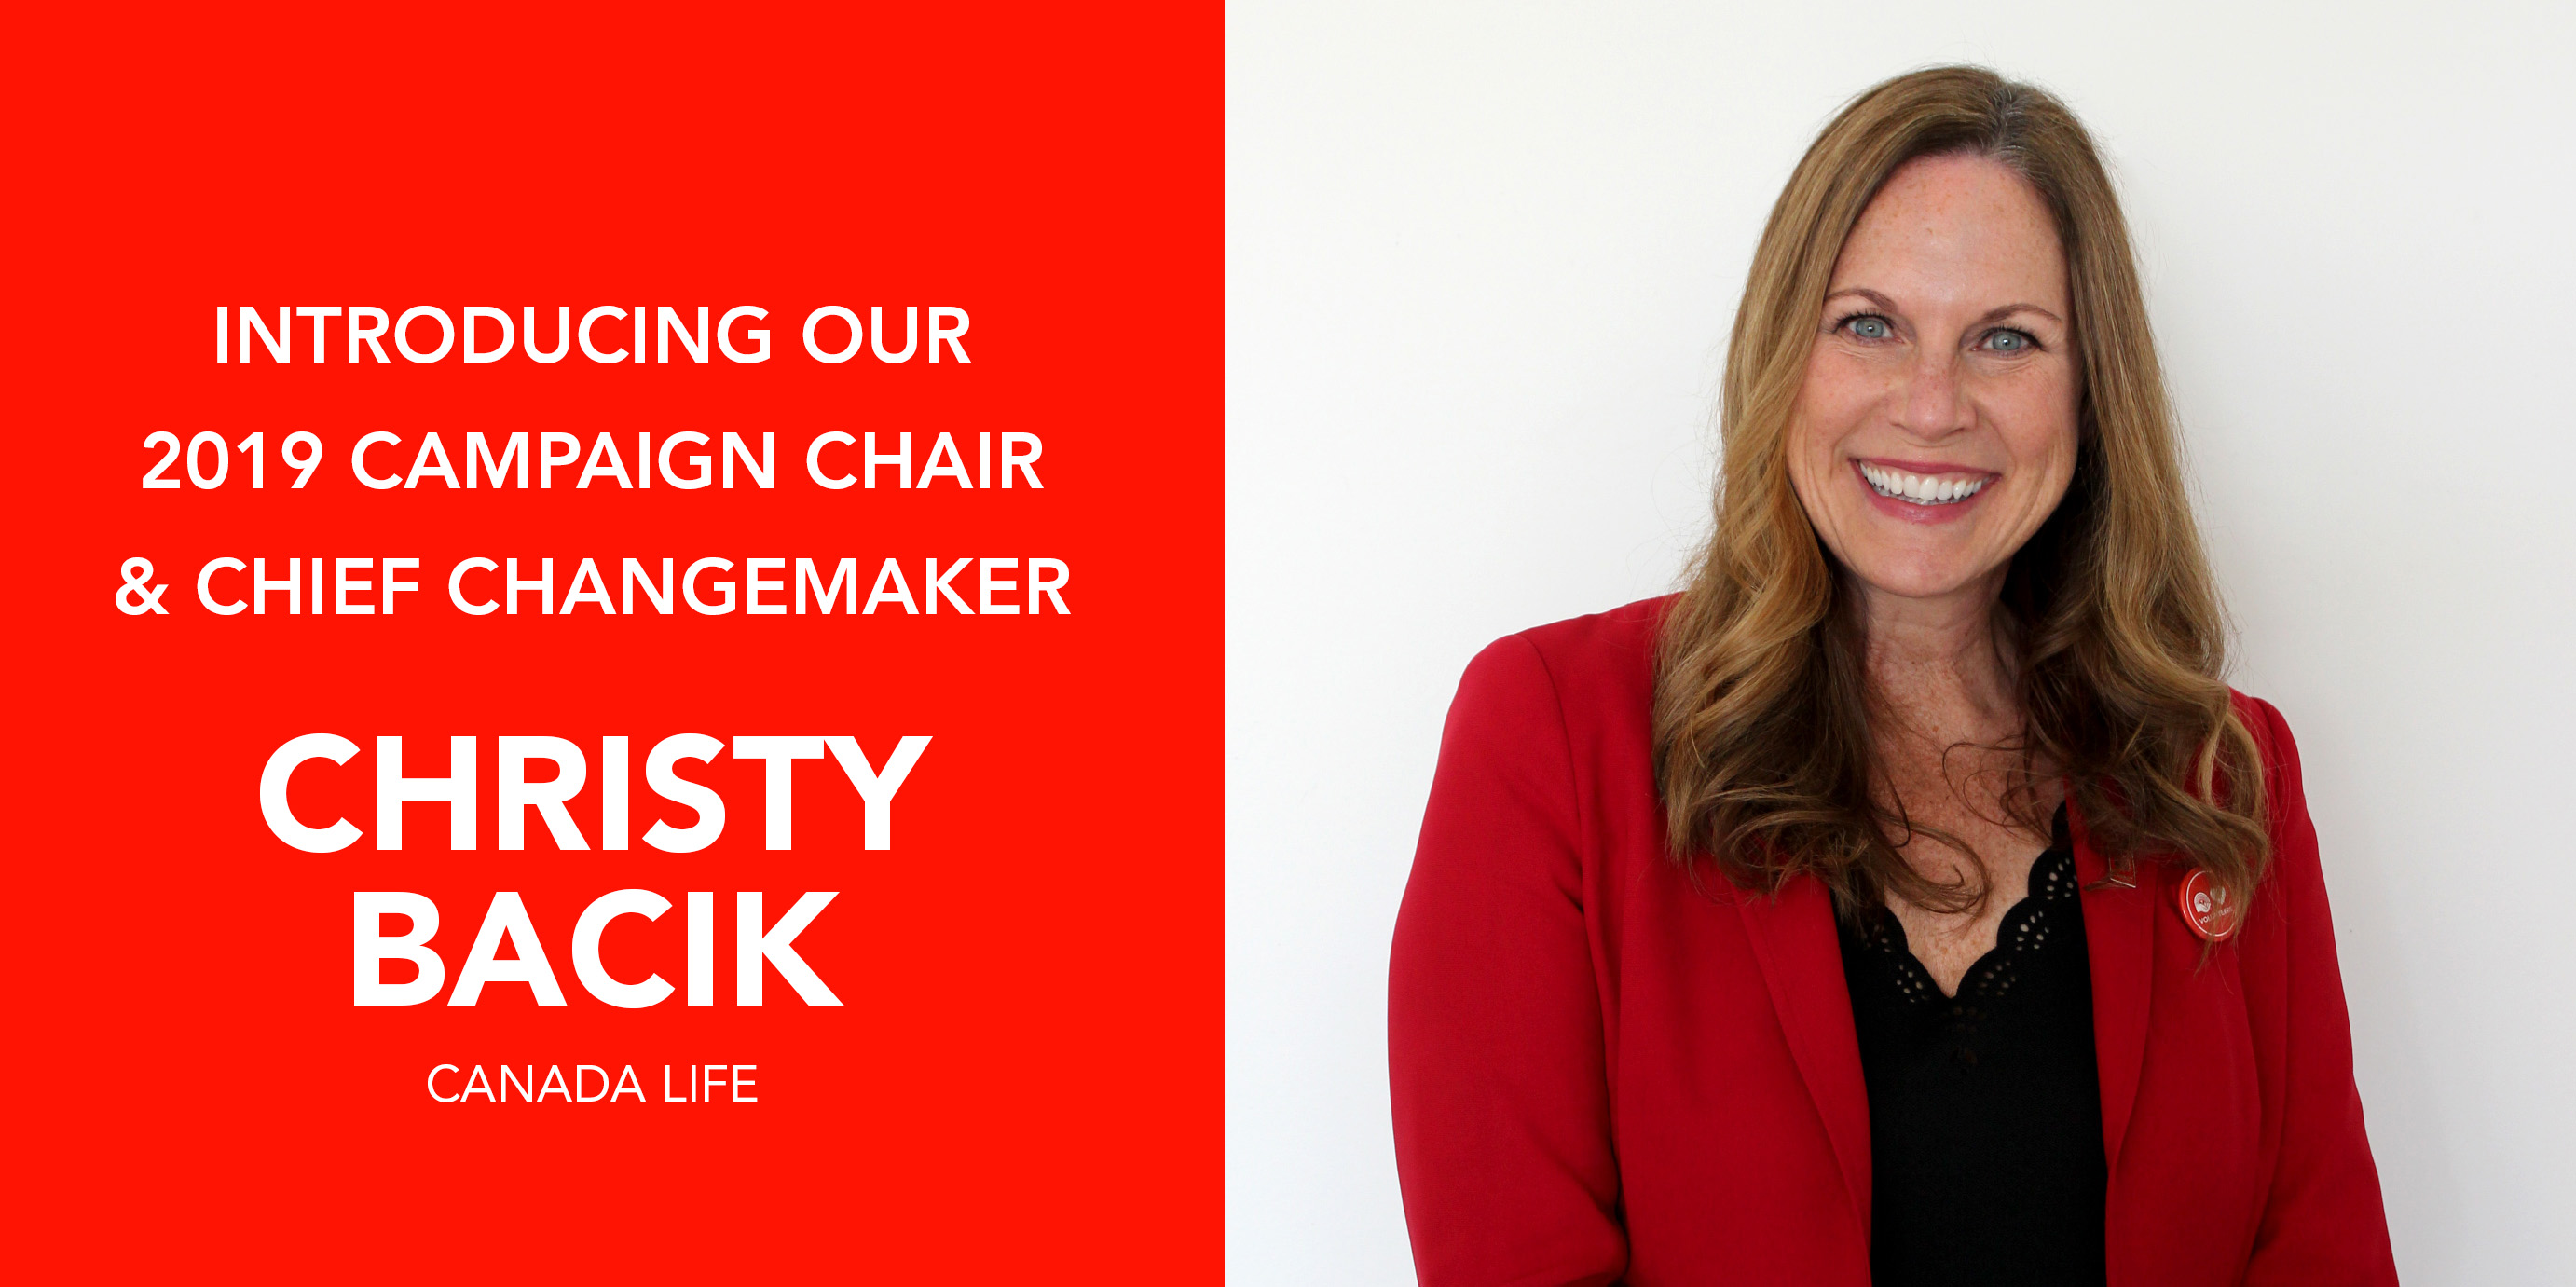 Christy Bacik - Chief ChangeMaker and 2019 Campaign Cabinet